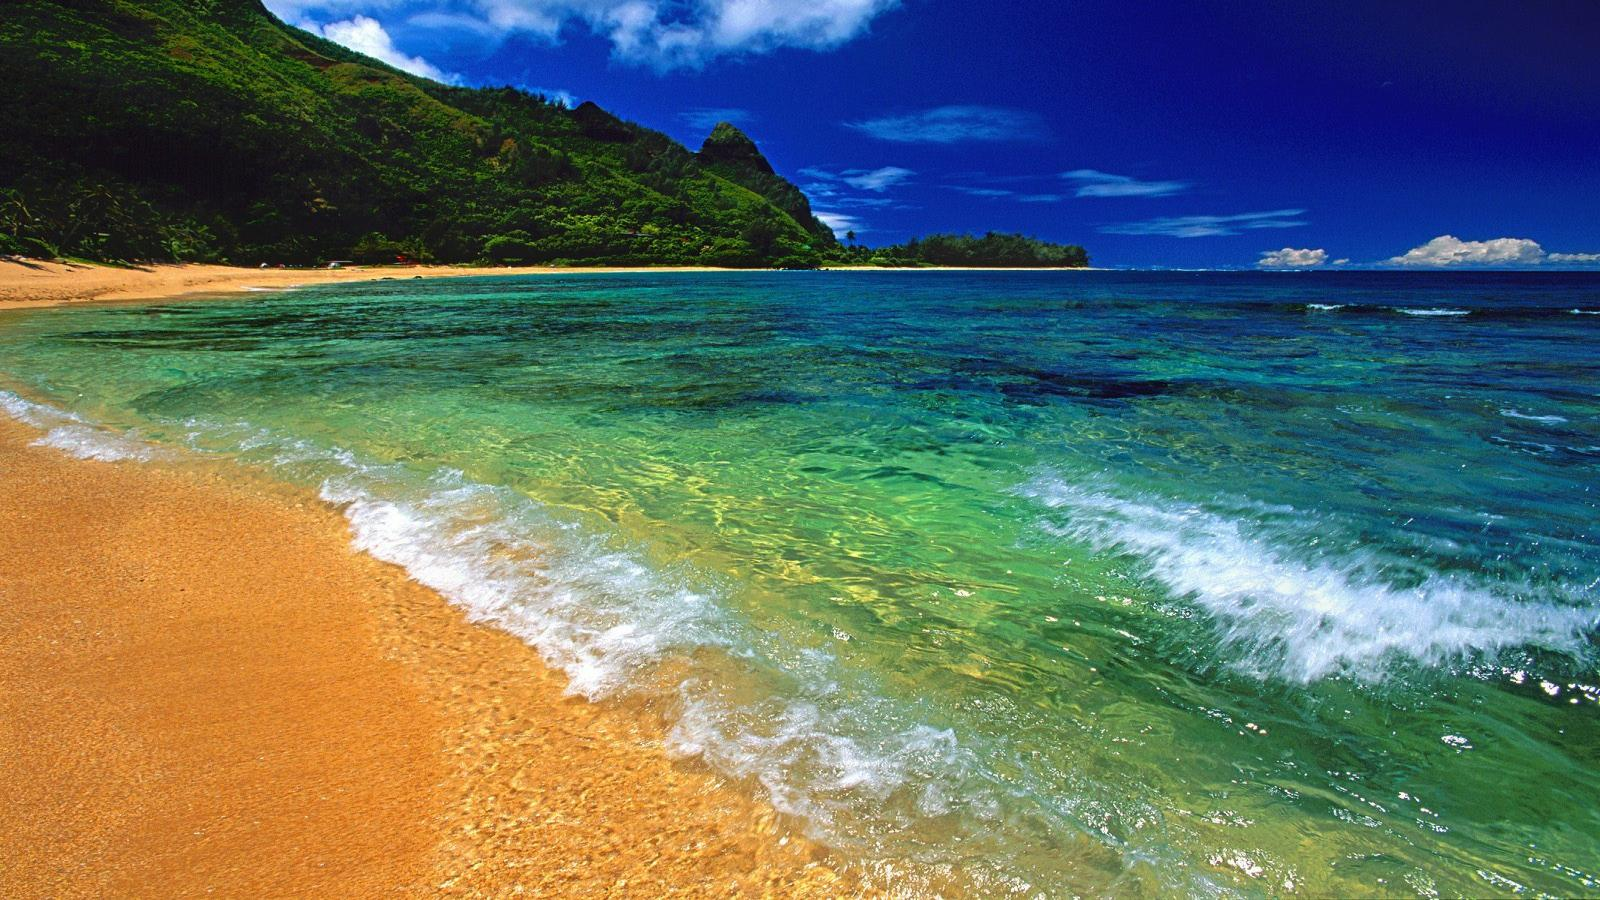 Wallpaper The Best Beach Wallpaper for 2015 Download HD Quality 1600x900